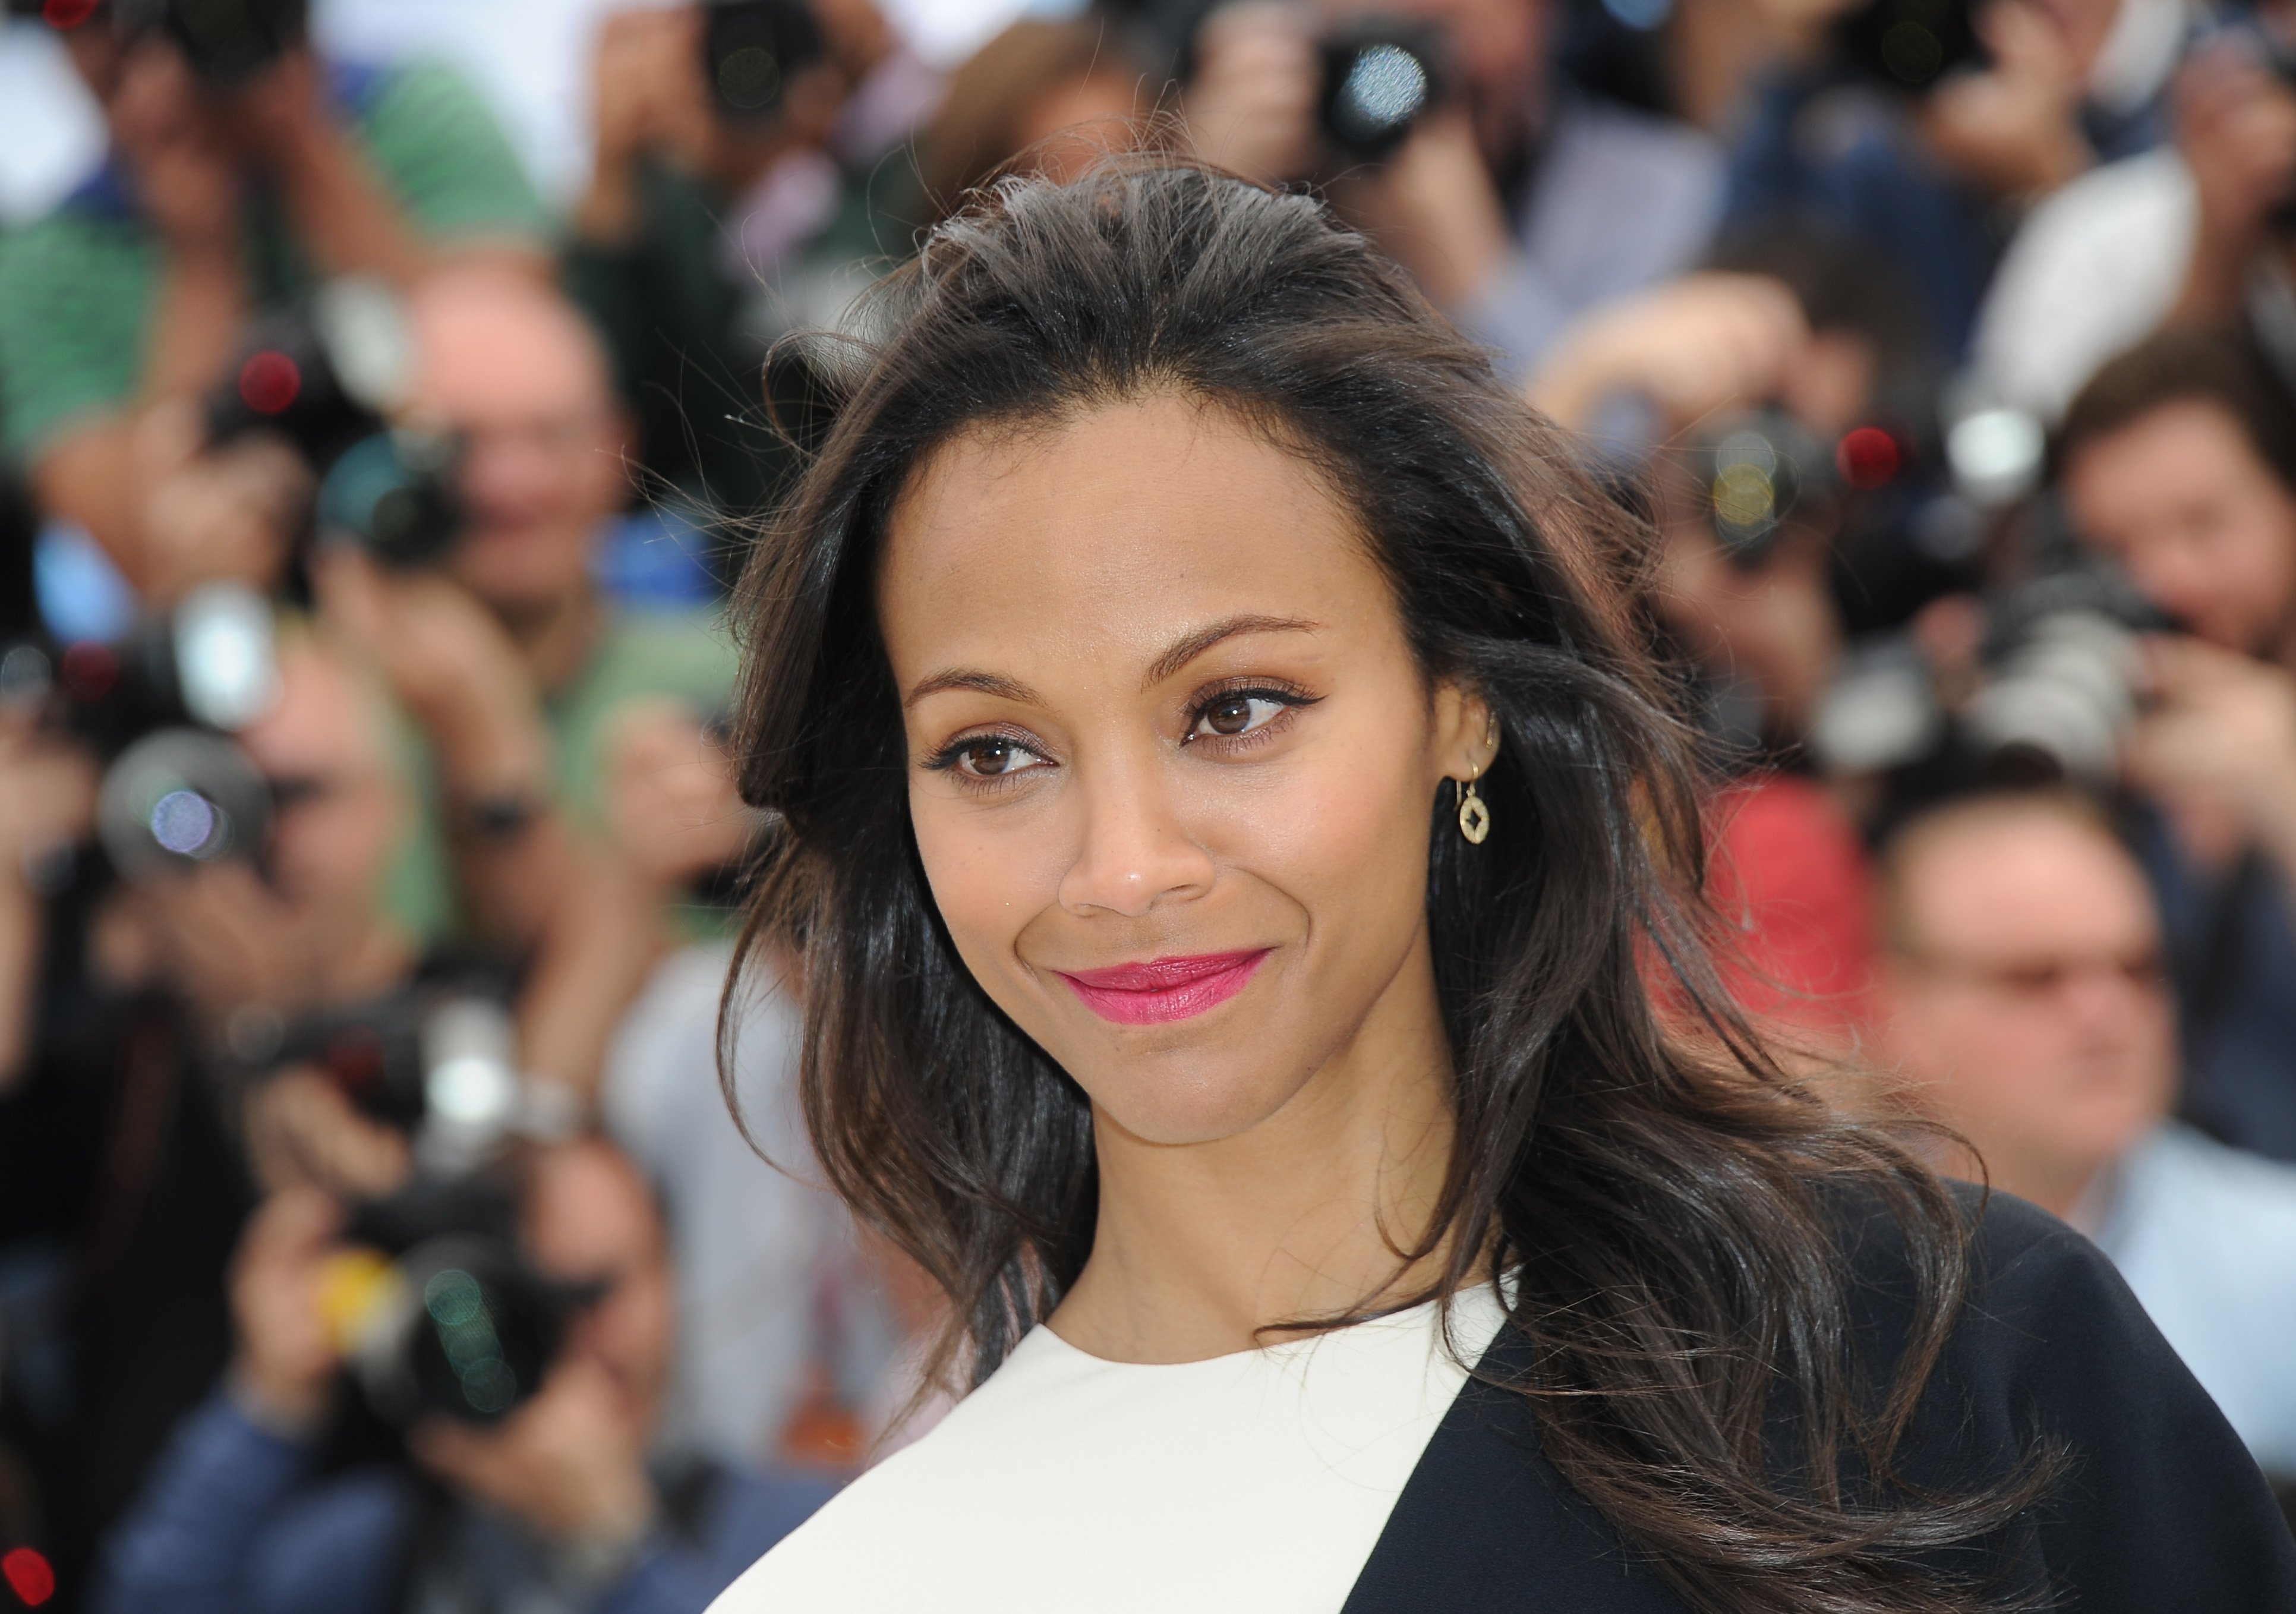 Zoe Saldana attends the photocall for 'Blood Ties' at The 66th Annual Cannes Film Festival on May 20, 2013. | Photo: GettyImages